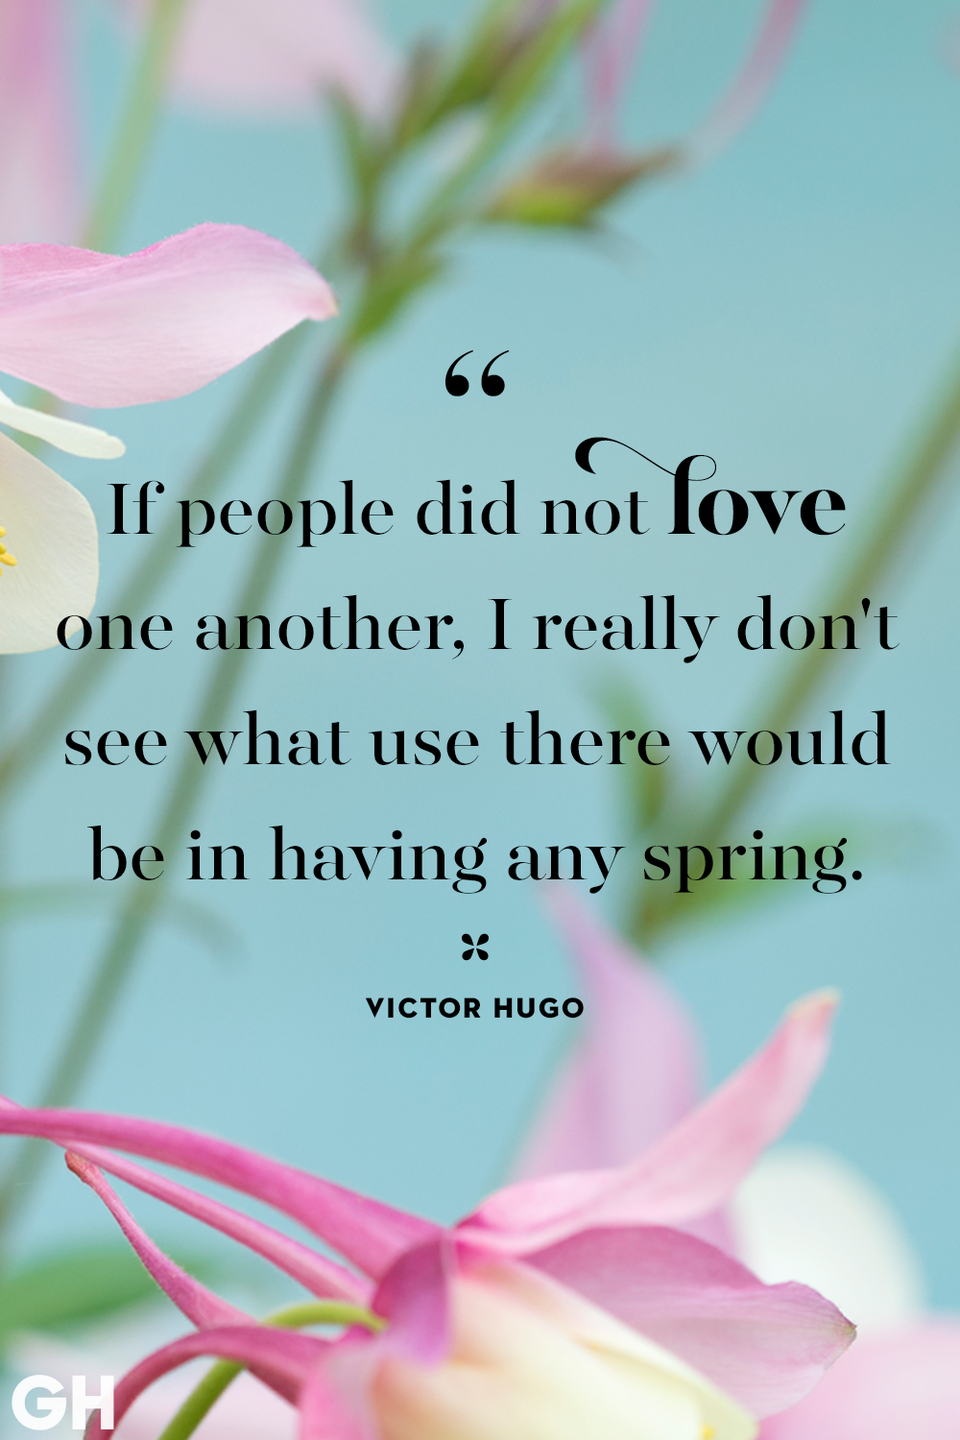 <p>If people did not love one another, I really don't see what use there would be in having any spring.</p>